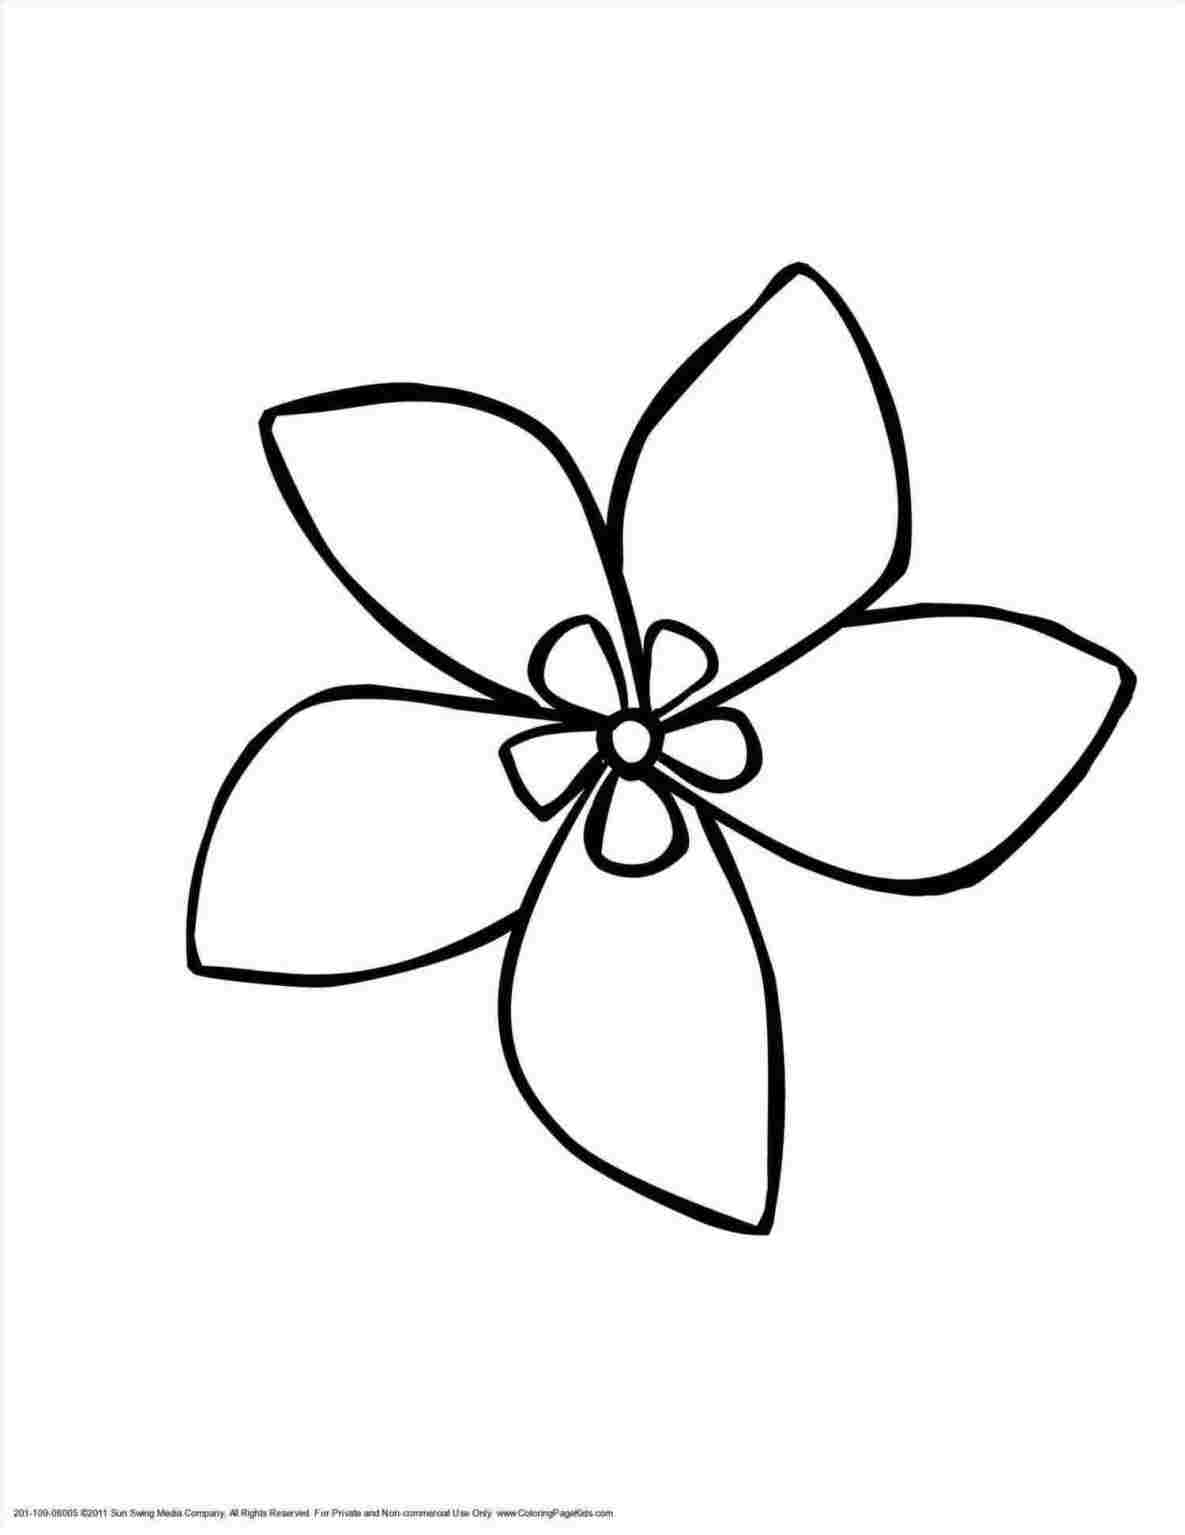 Drawing Pictures Of Flowers That Are Easy Free Download